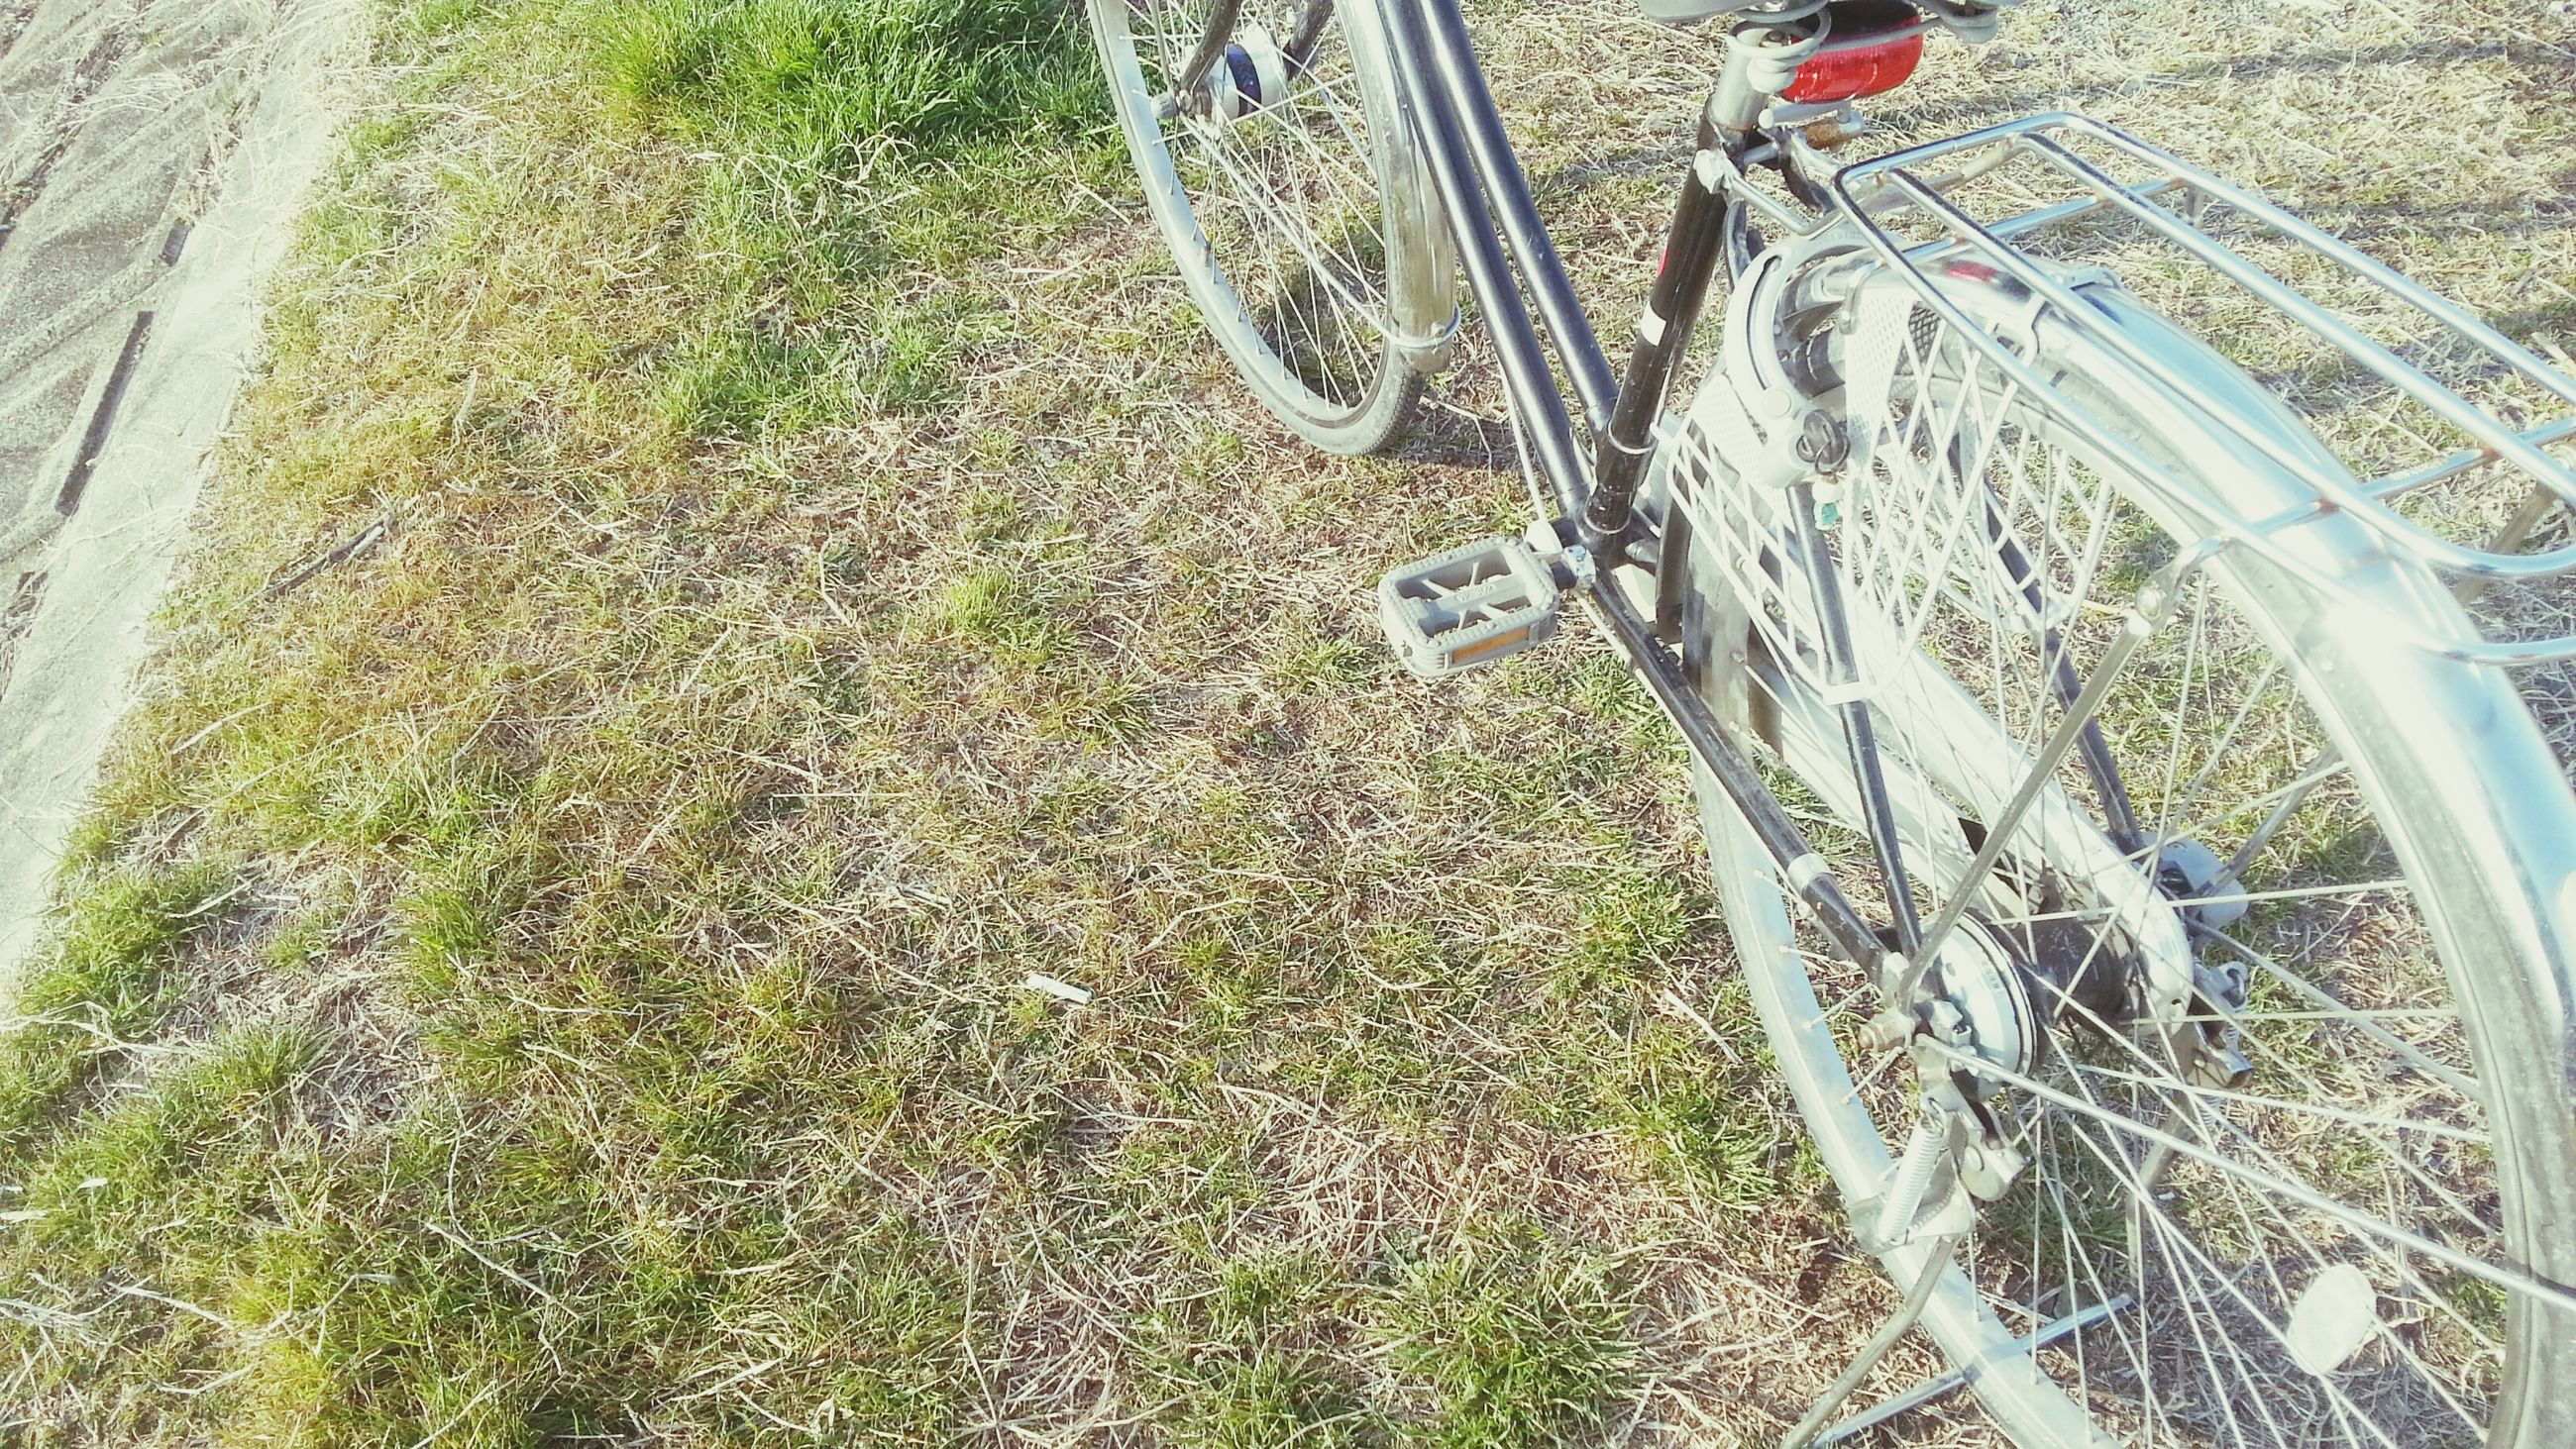 transportation, high angle view, mode of transport, grass, land vehicle, bicycle, field, day, outdoors, metal, plant, sunlight, the way forward, growth, road, wheel, green color, no people, footpath, street